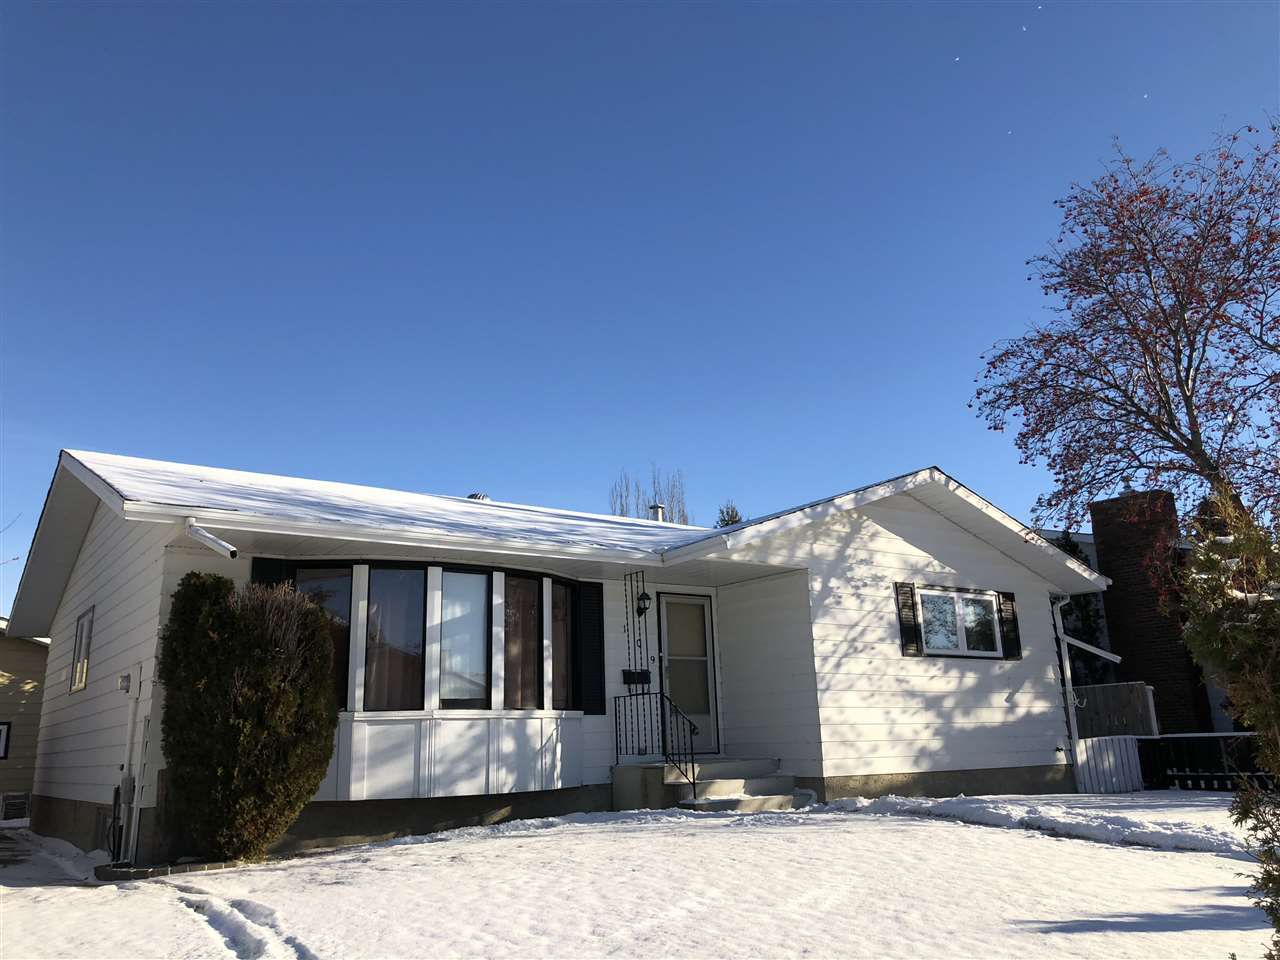 Main Photo: 109 Plum Crescent: Wetaskiwin House for sale : MLS®# E4131330